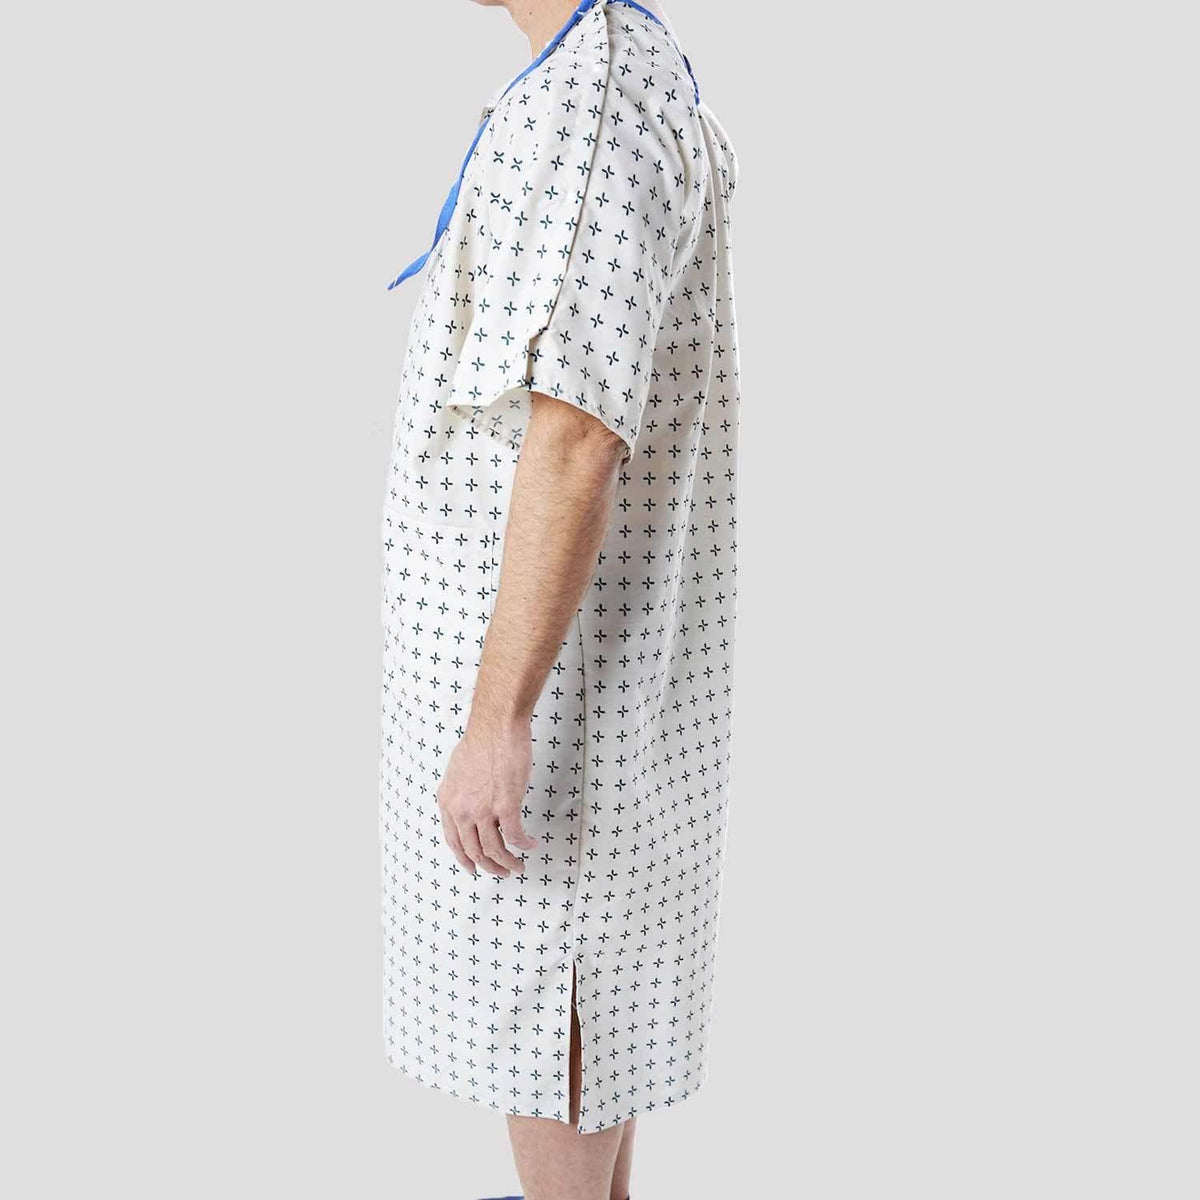 Hospital Gown by Care+Wear x Parsons